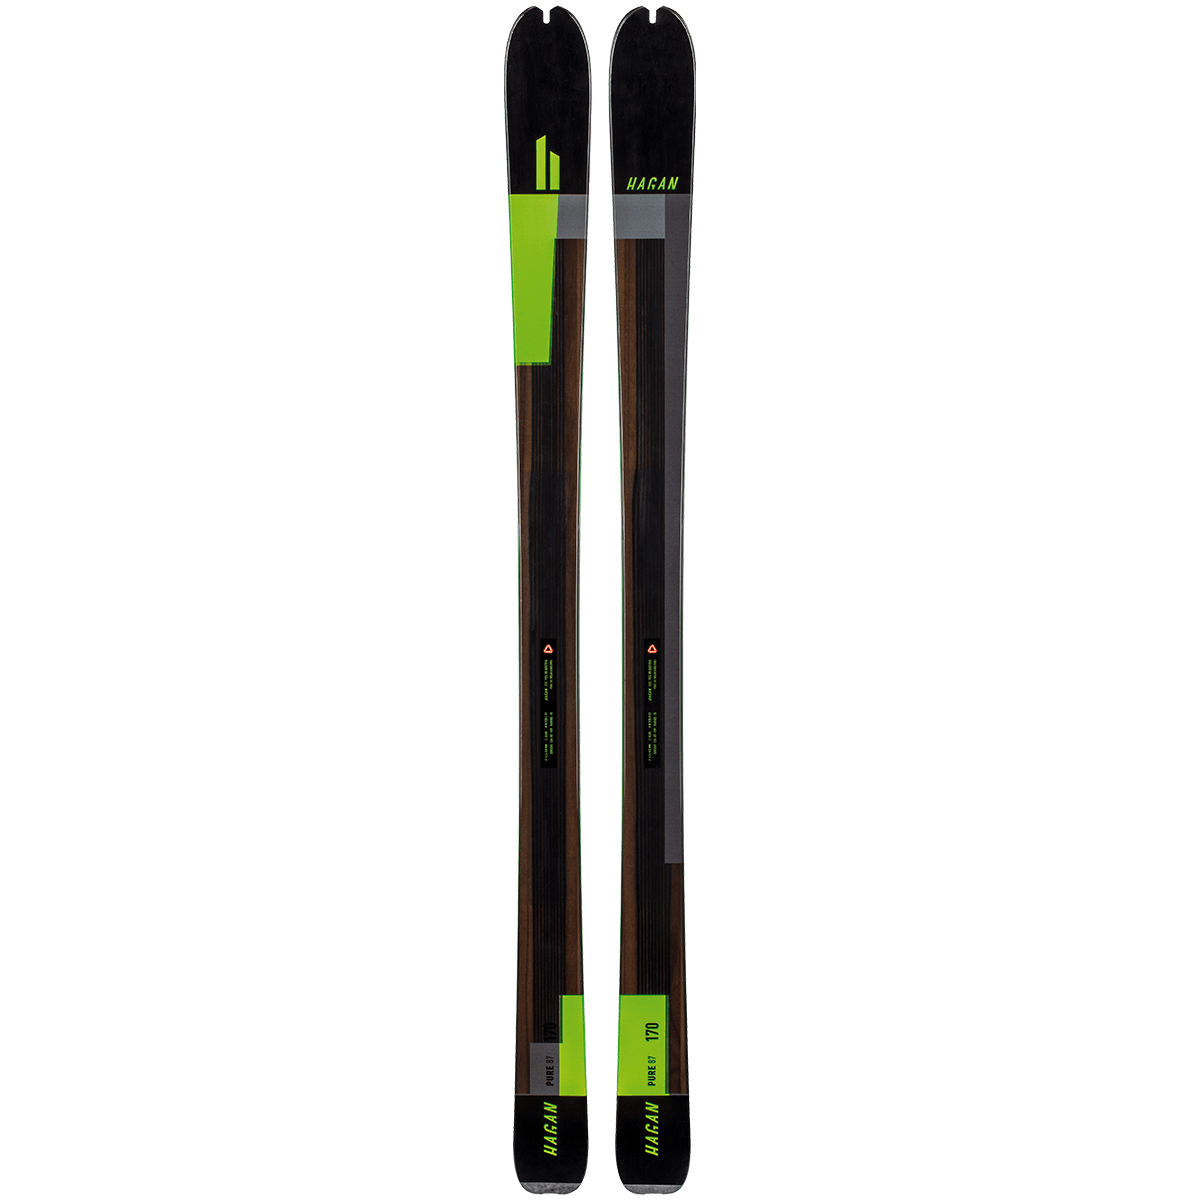 Hagan Ski Mountaineering Pure 87 classic all-mountain alpine ski touring ski - award winner